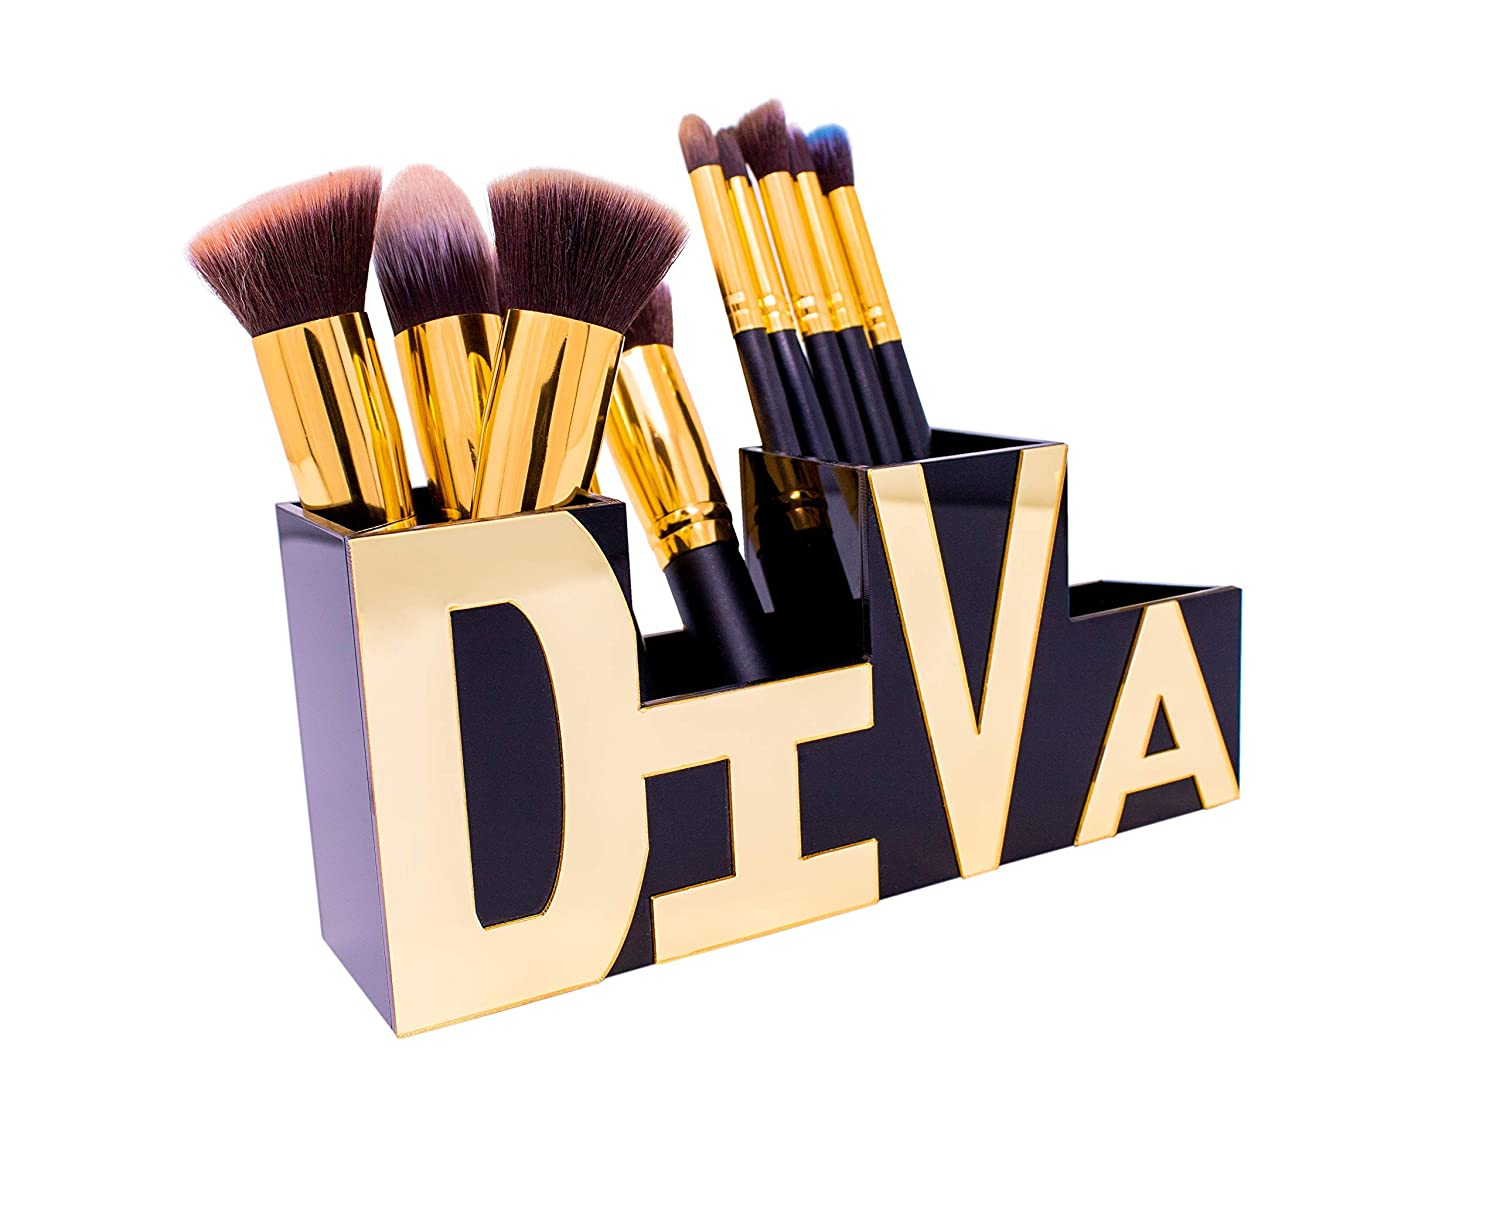 Makeup Brush Holder-Desk Organizer – Beautifully Stylized Diva Makeup Organizer & Pen Holder – Office Supply Holder - Brush Holder Boxes